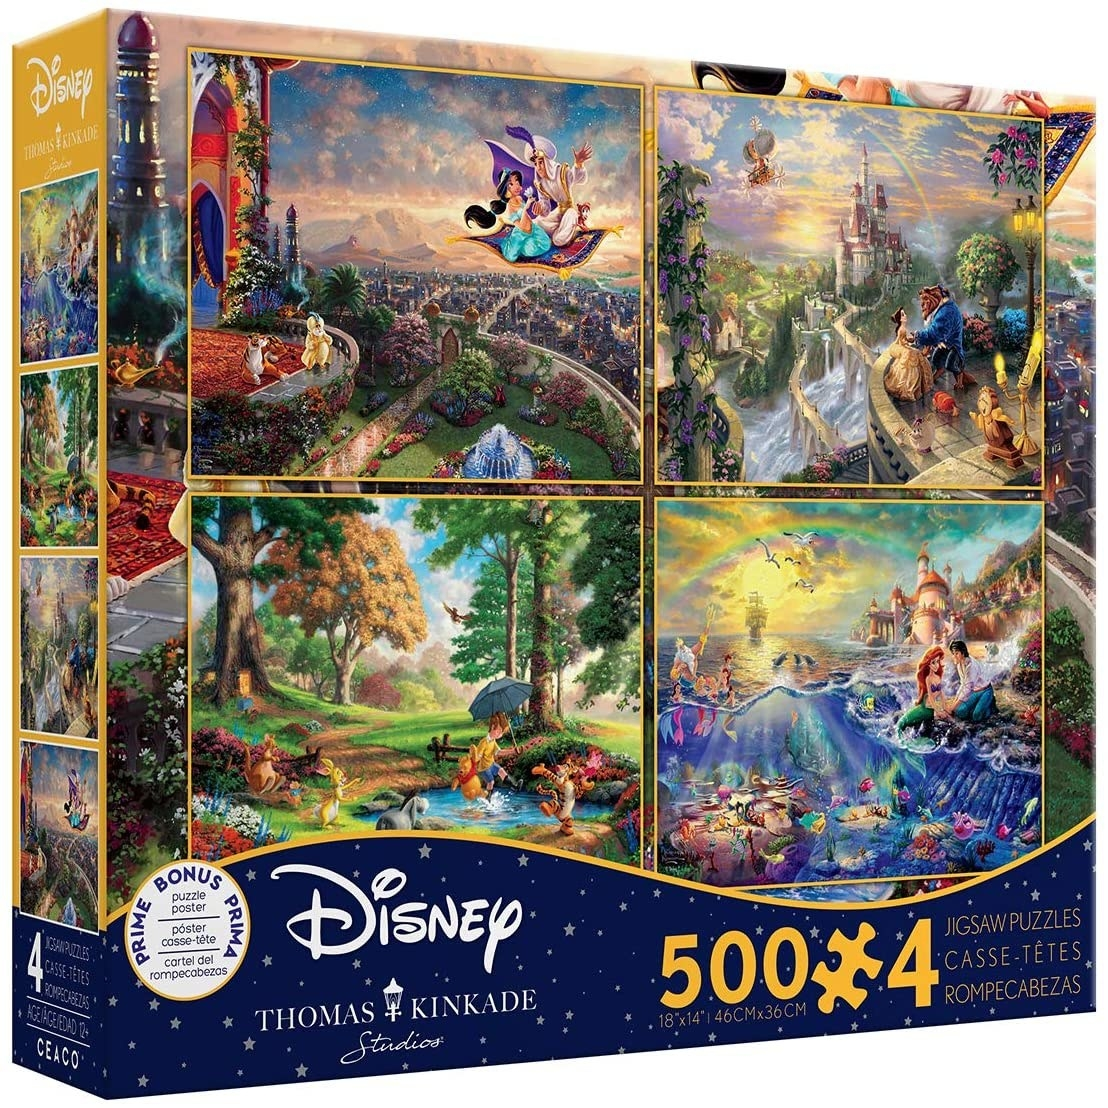 four puzzles depicting paintings of winnie the pooh, aladdin, the little mermaid, and beauty and the beast